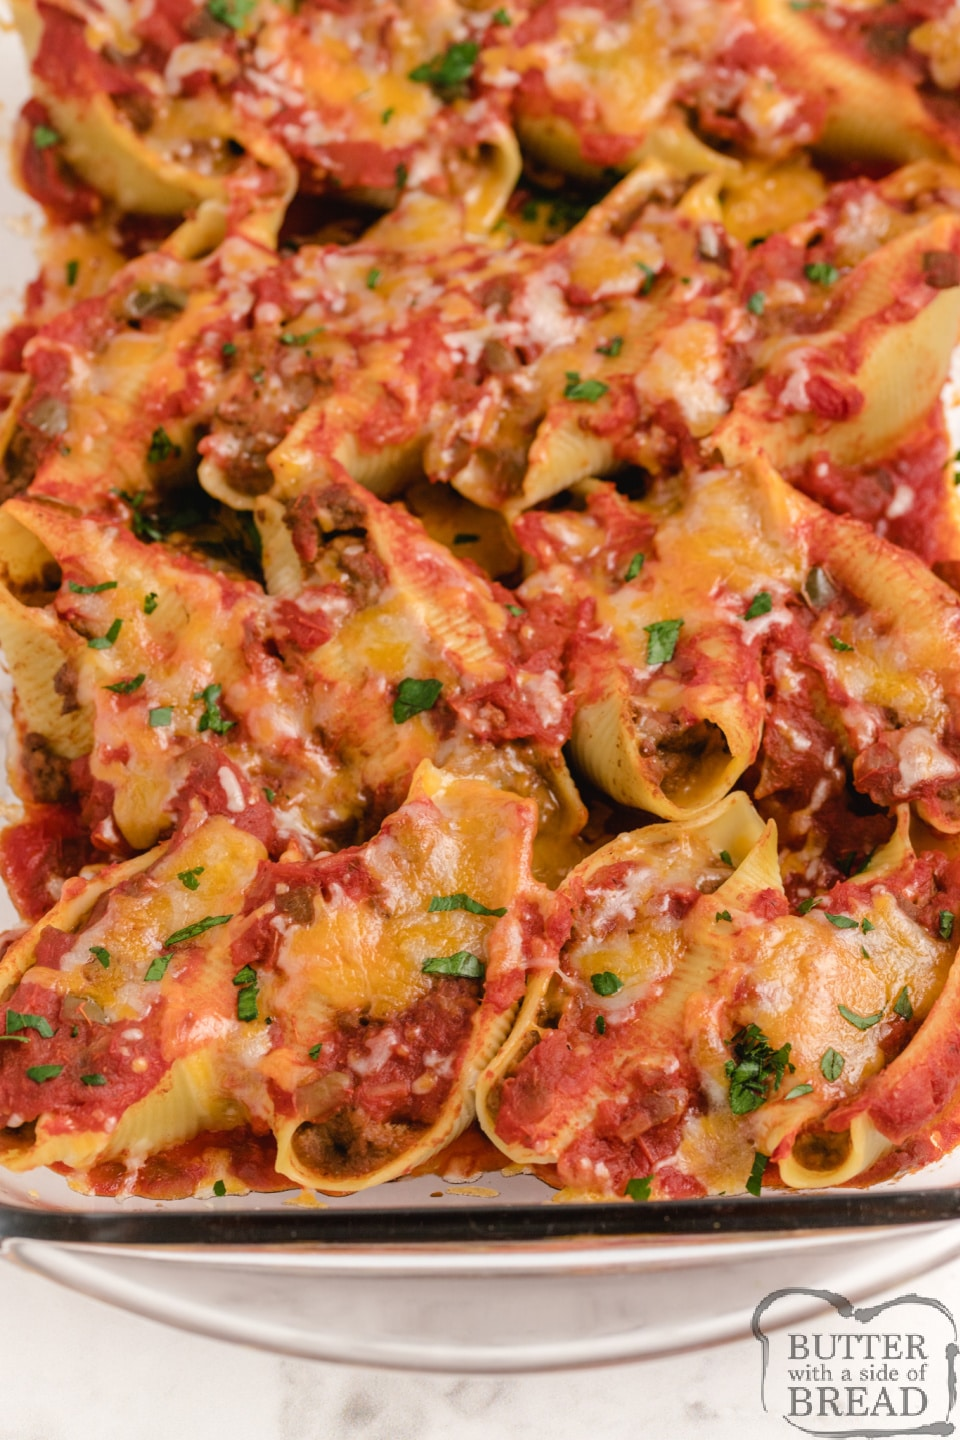 Easy Mexican dinner made with jumbo pasta shells